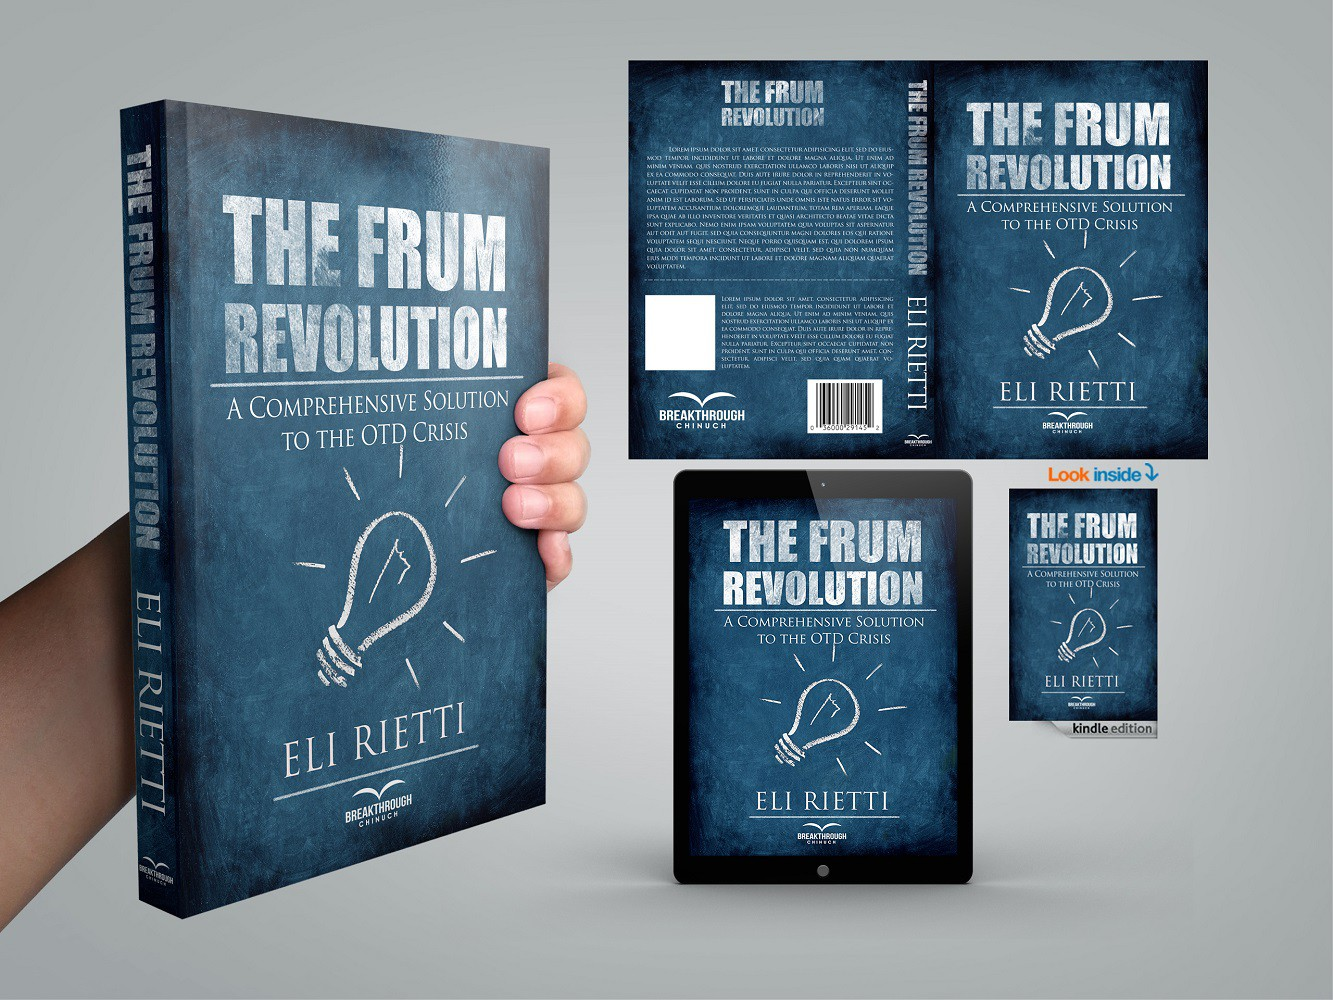 The Revolution! Create a subtle, understated, yet compelling and dynamic book cover.